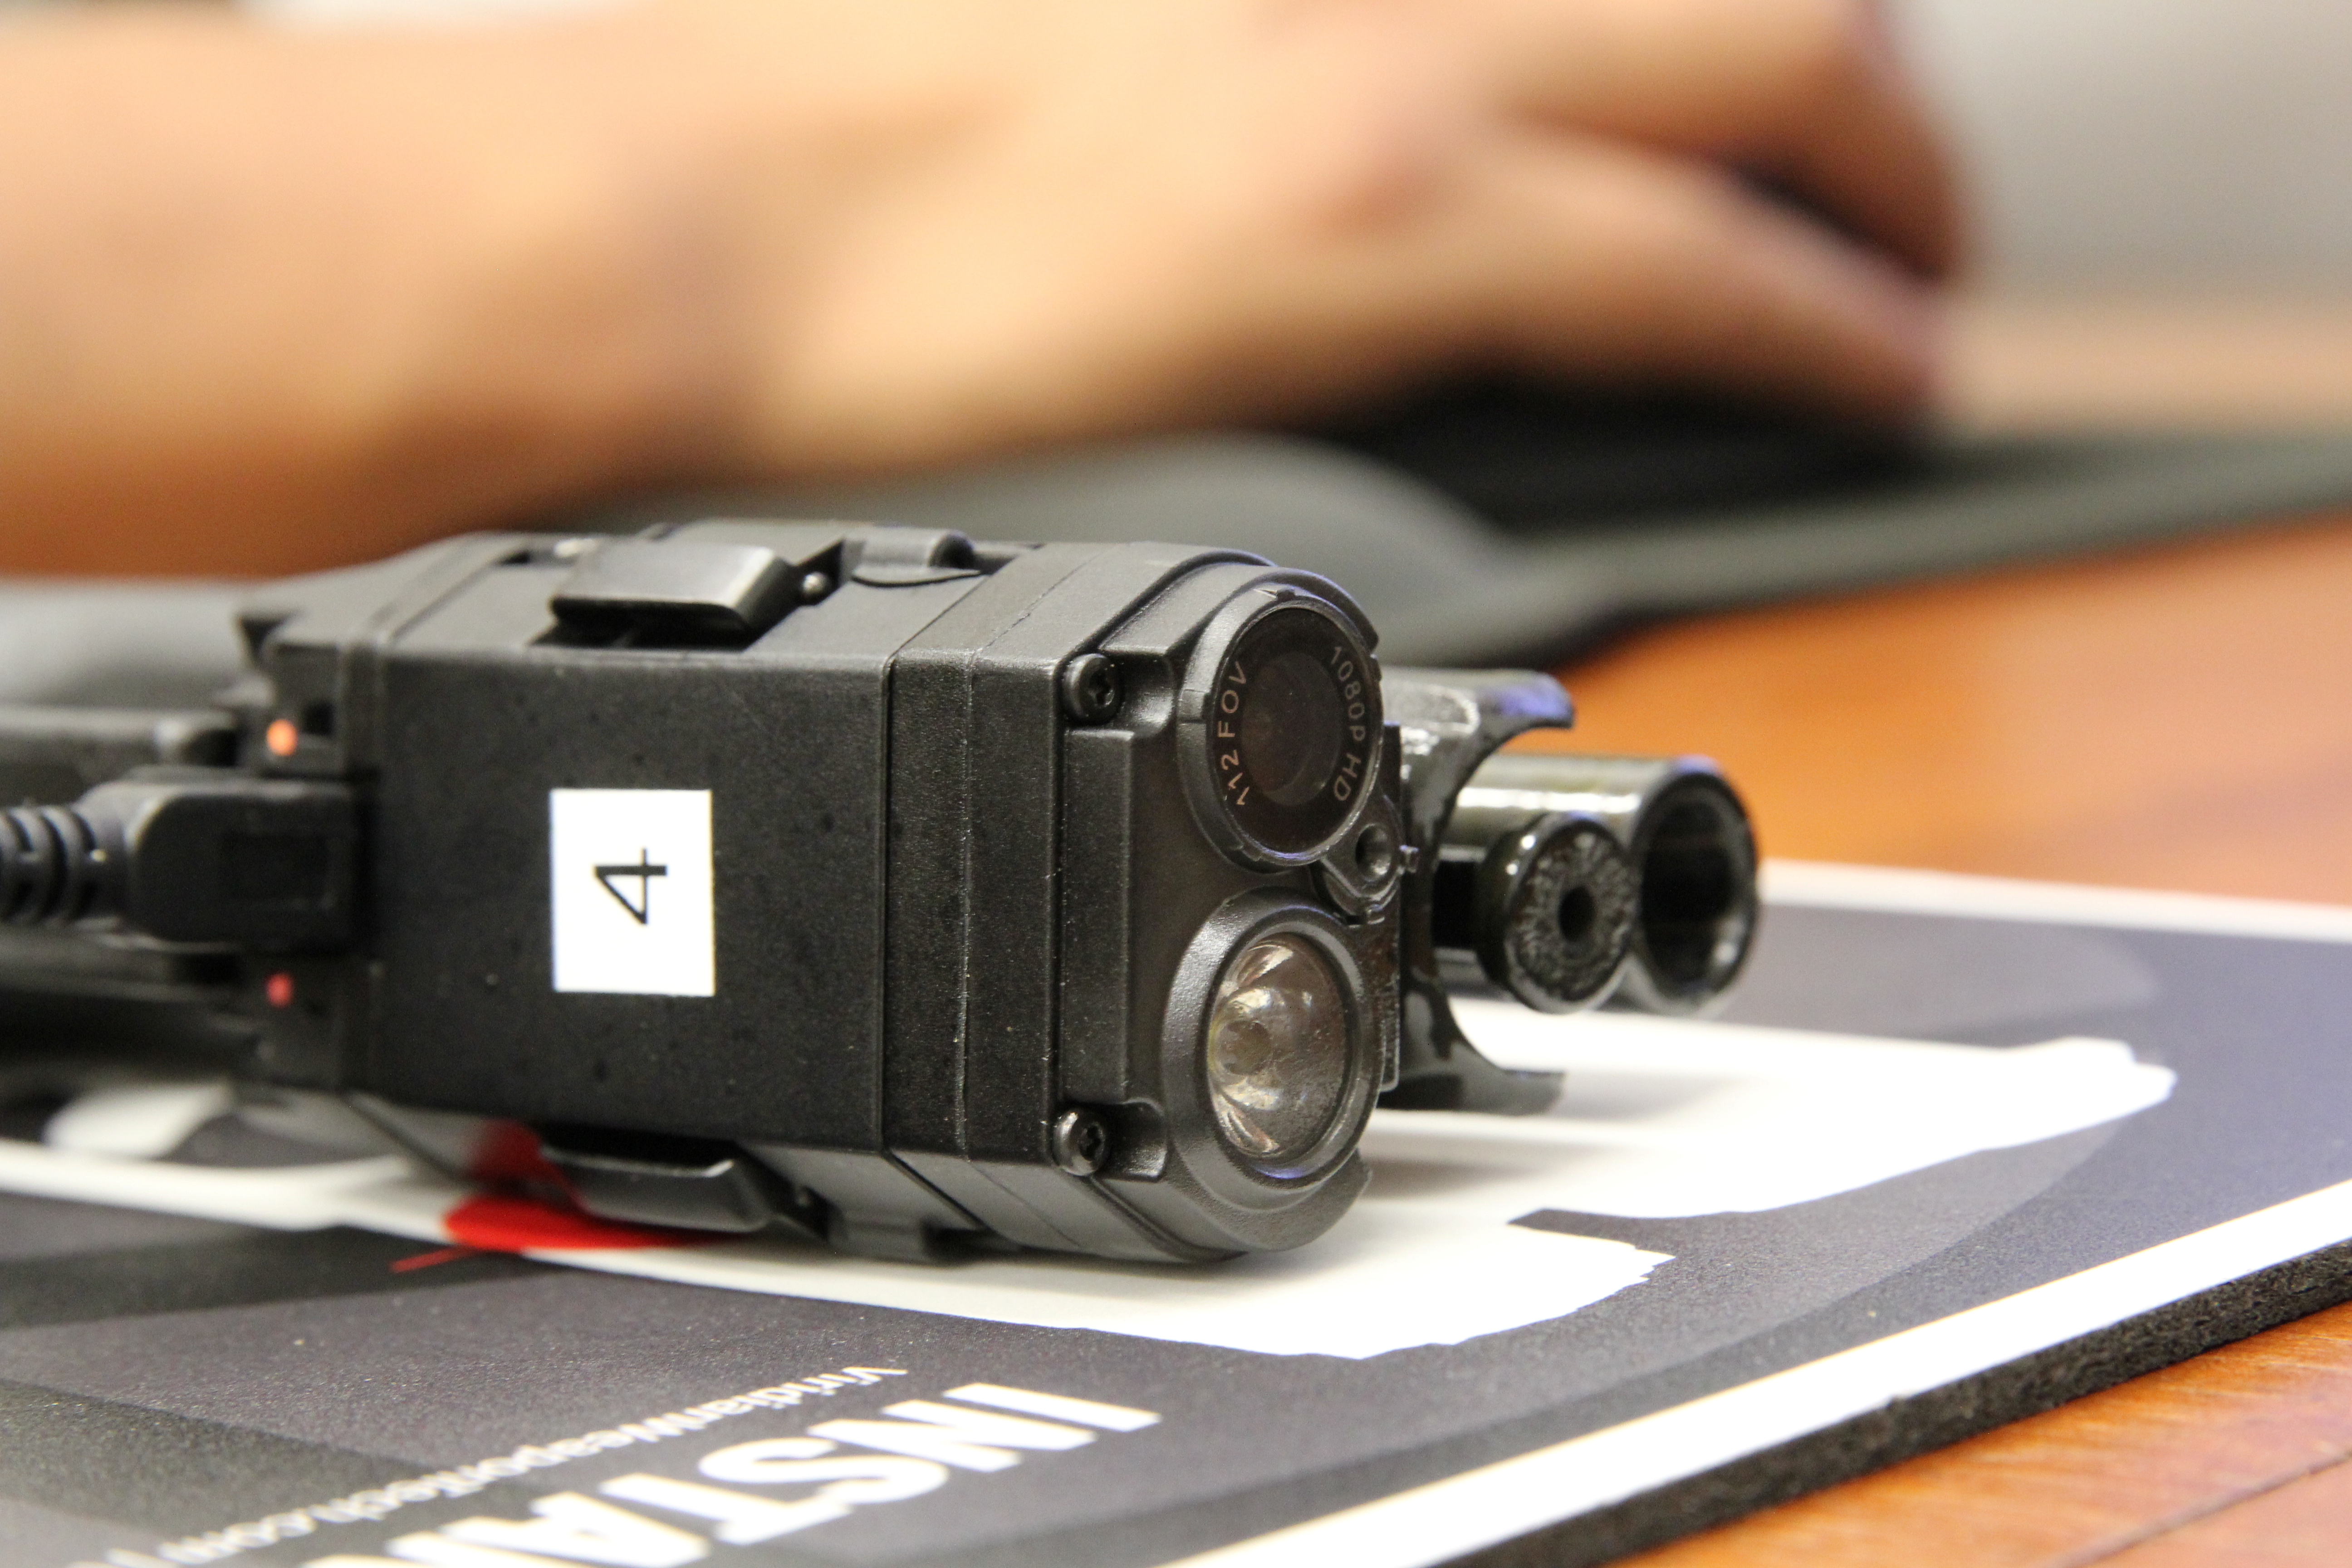 The battery, lens and light of a Viridian FACT Duty weapon-mounted camera are seen on the service weapon of a King City Police Department officer during the uploading of footage at the department's office in King City, California, U.S., July 16, 2020. REUTERS/Nathan Frandino